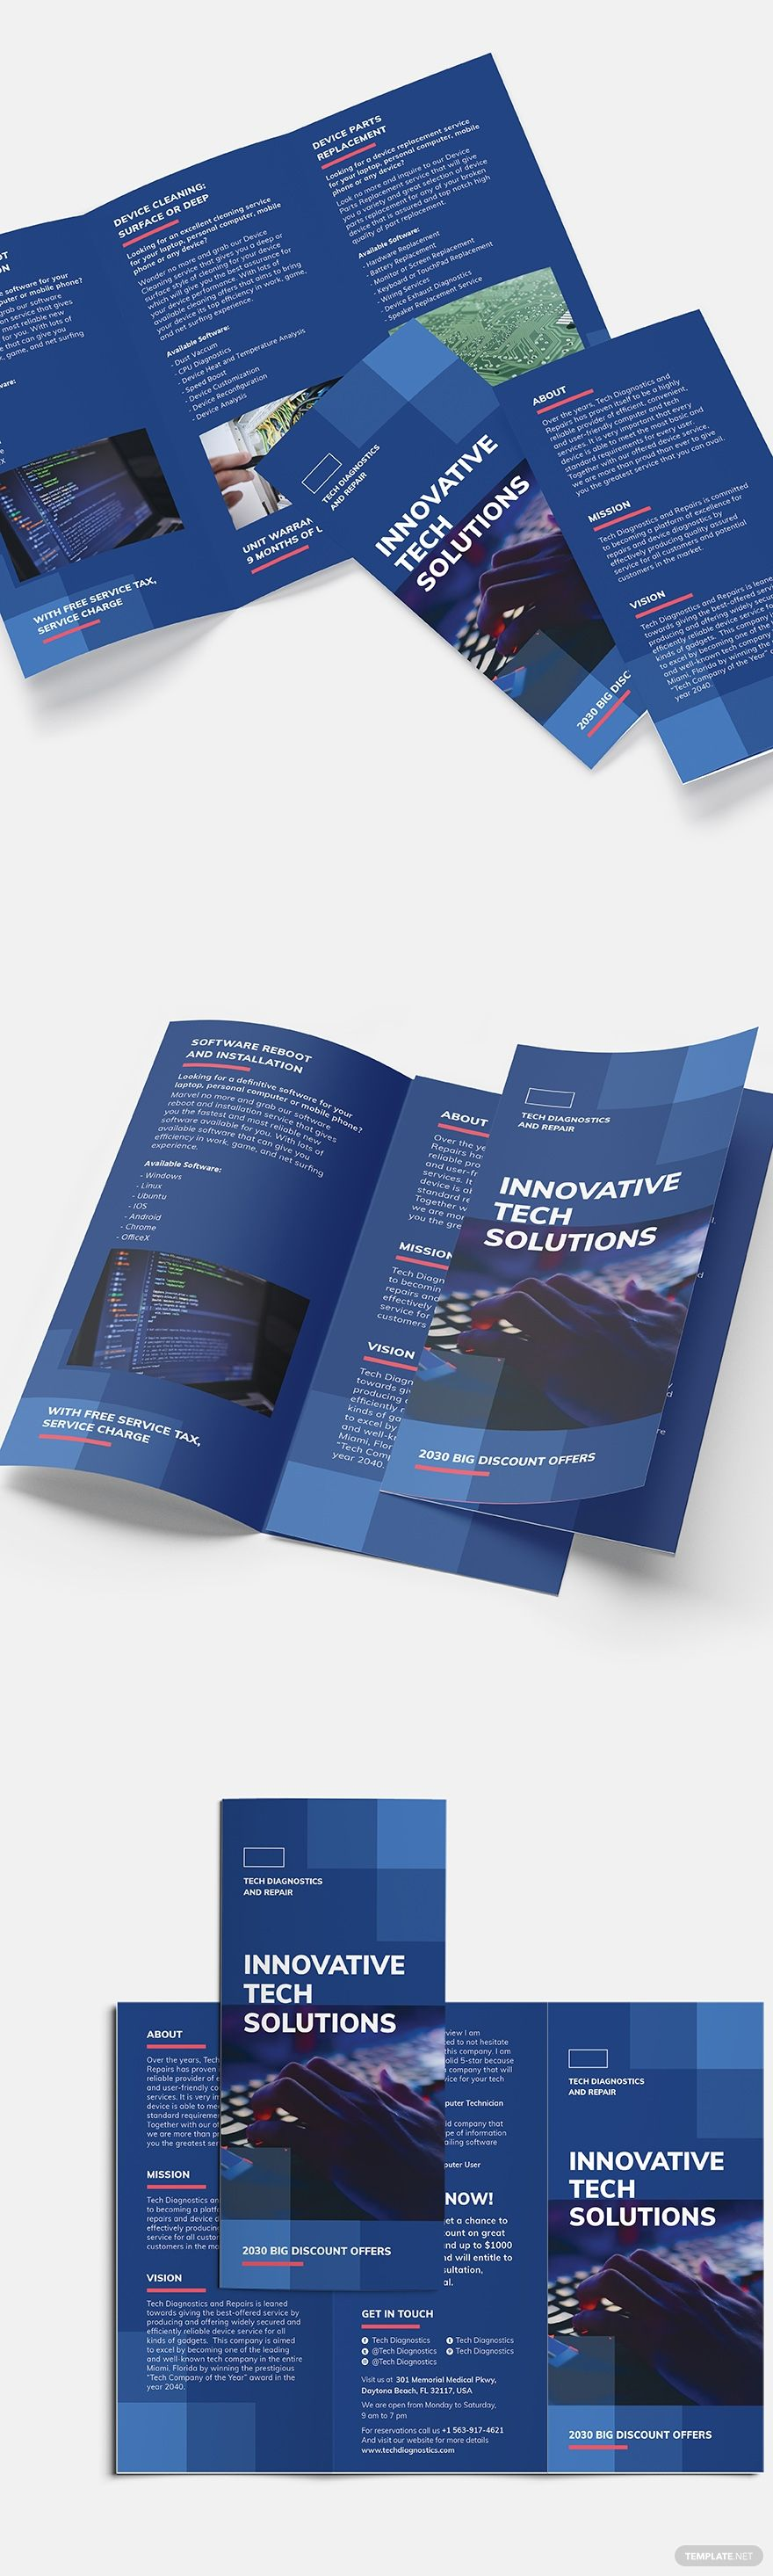 Computer Service TriFold Brochure Template in 2020